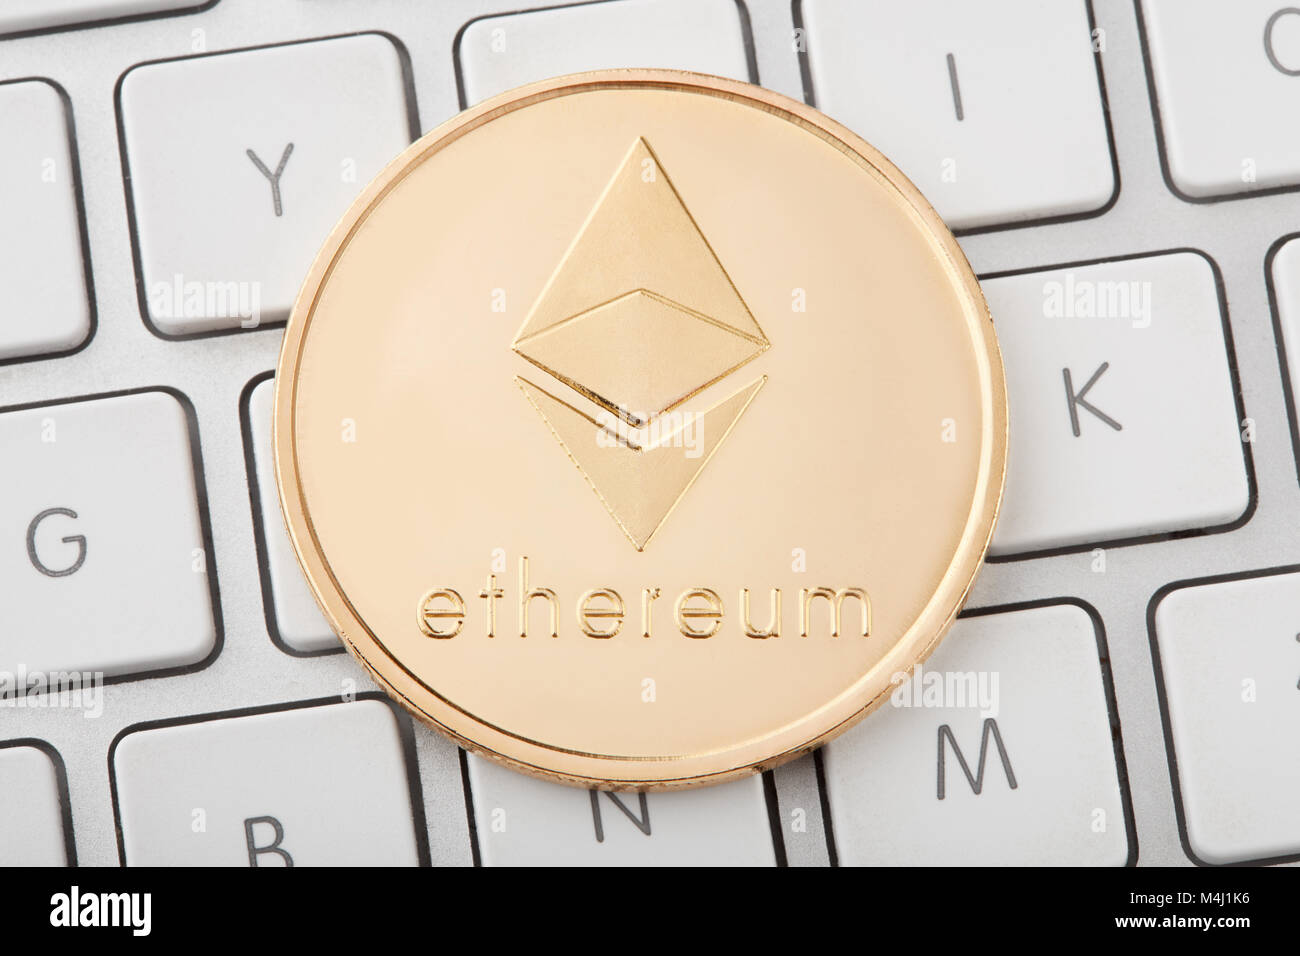 Ethereum golden cryptocurrency coin on keyboard - Stock Image